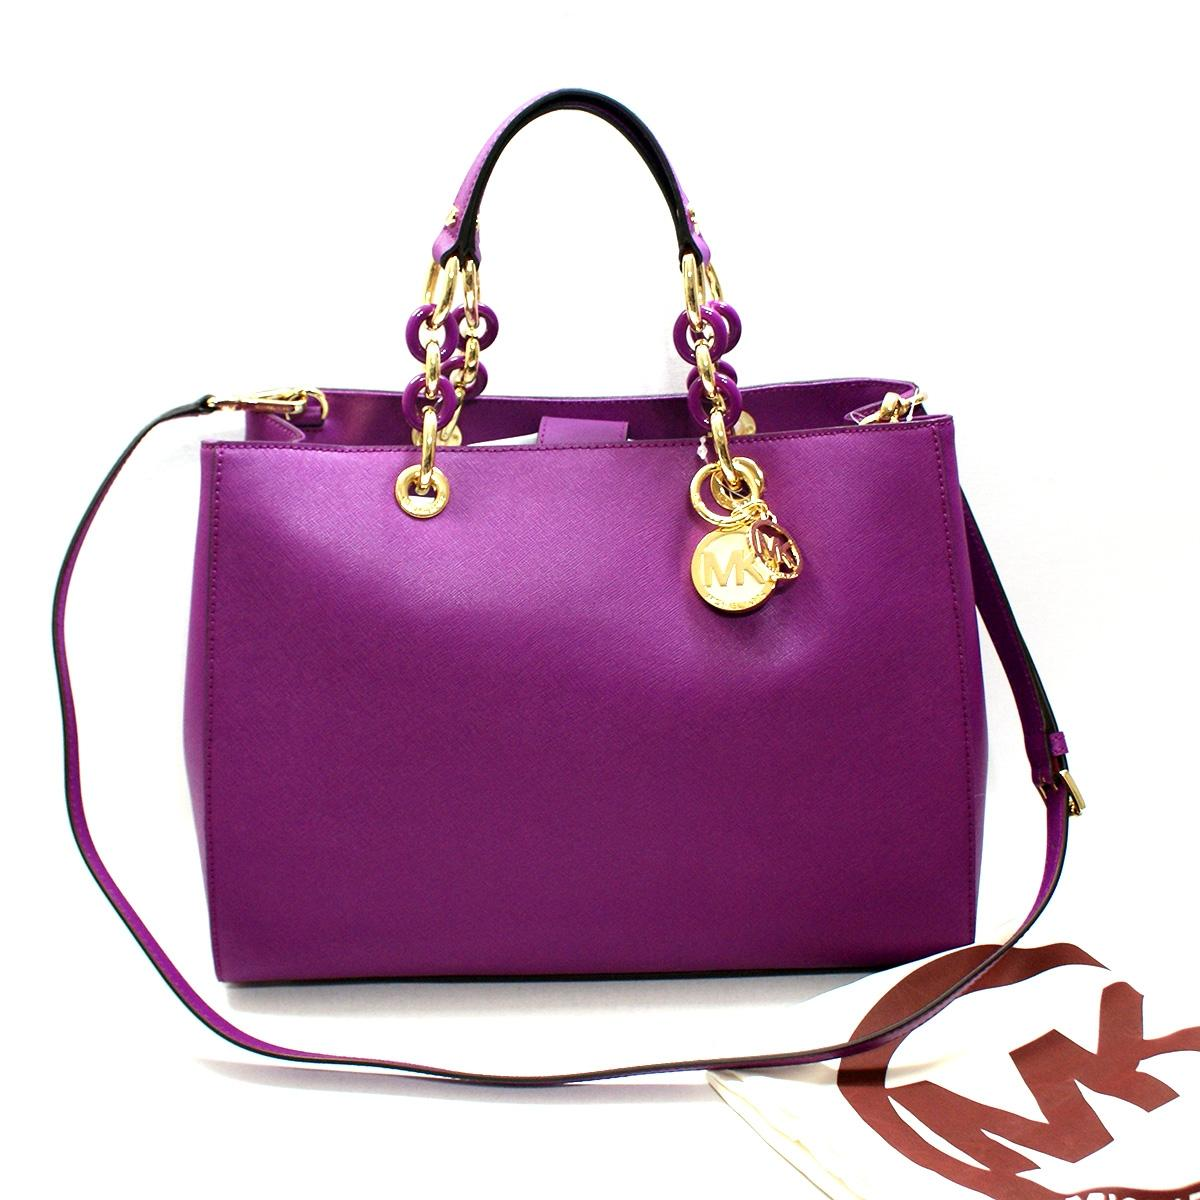 Women shoes online Purple handbags